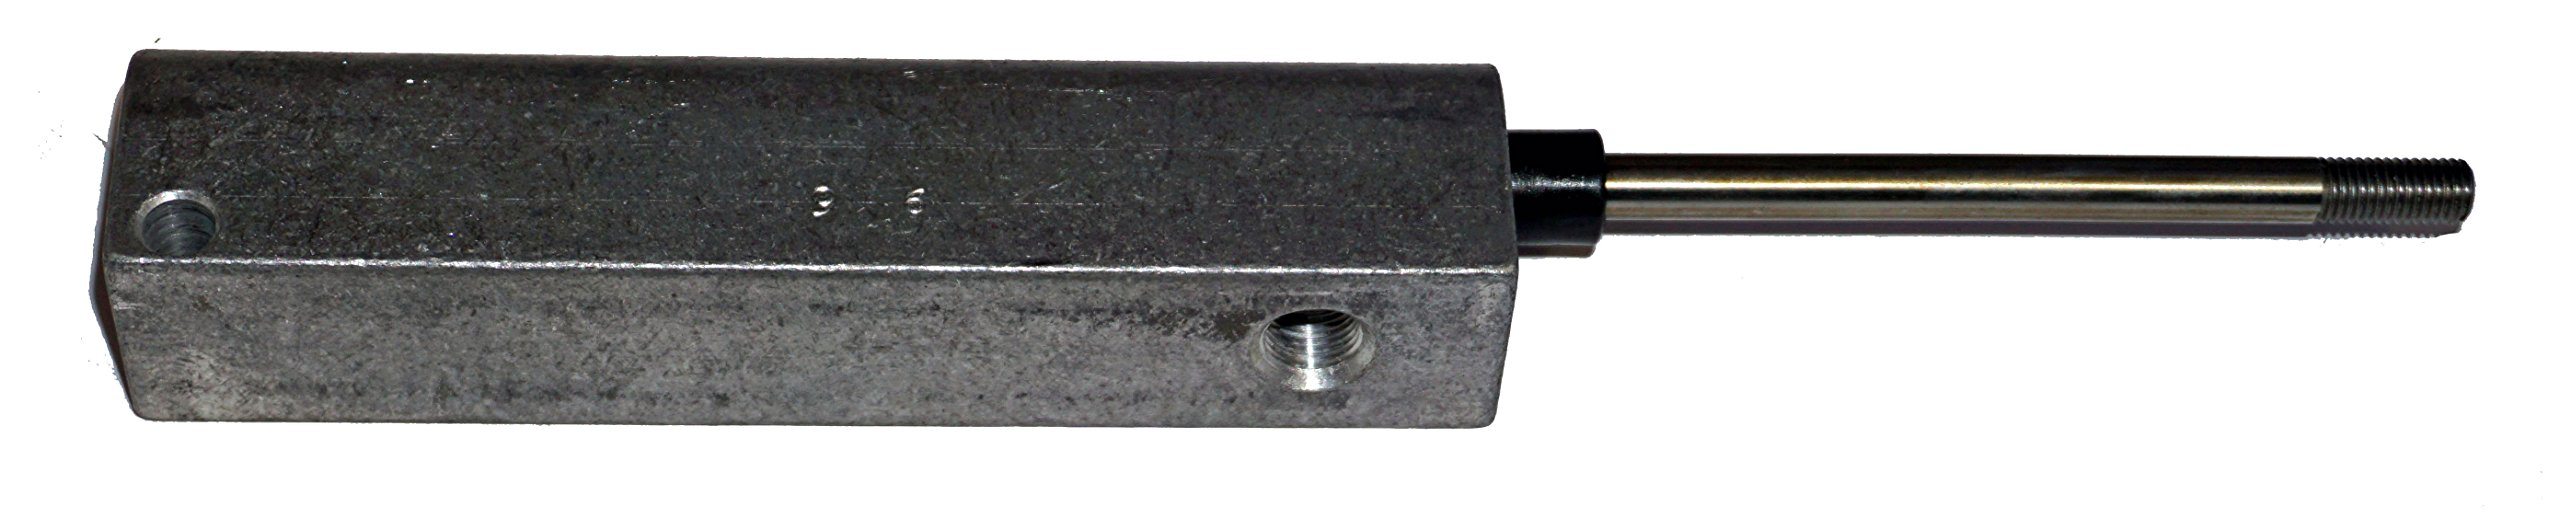 Rotary Lift S130061 1 Port Air Cylinder For 123 Series 4 Post Lifts by Rotary (Image #1)